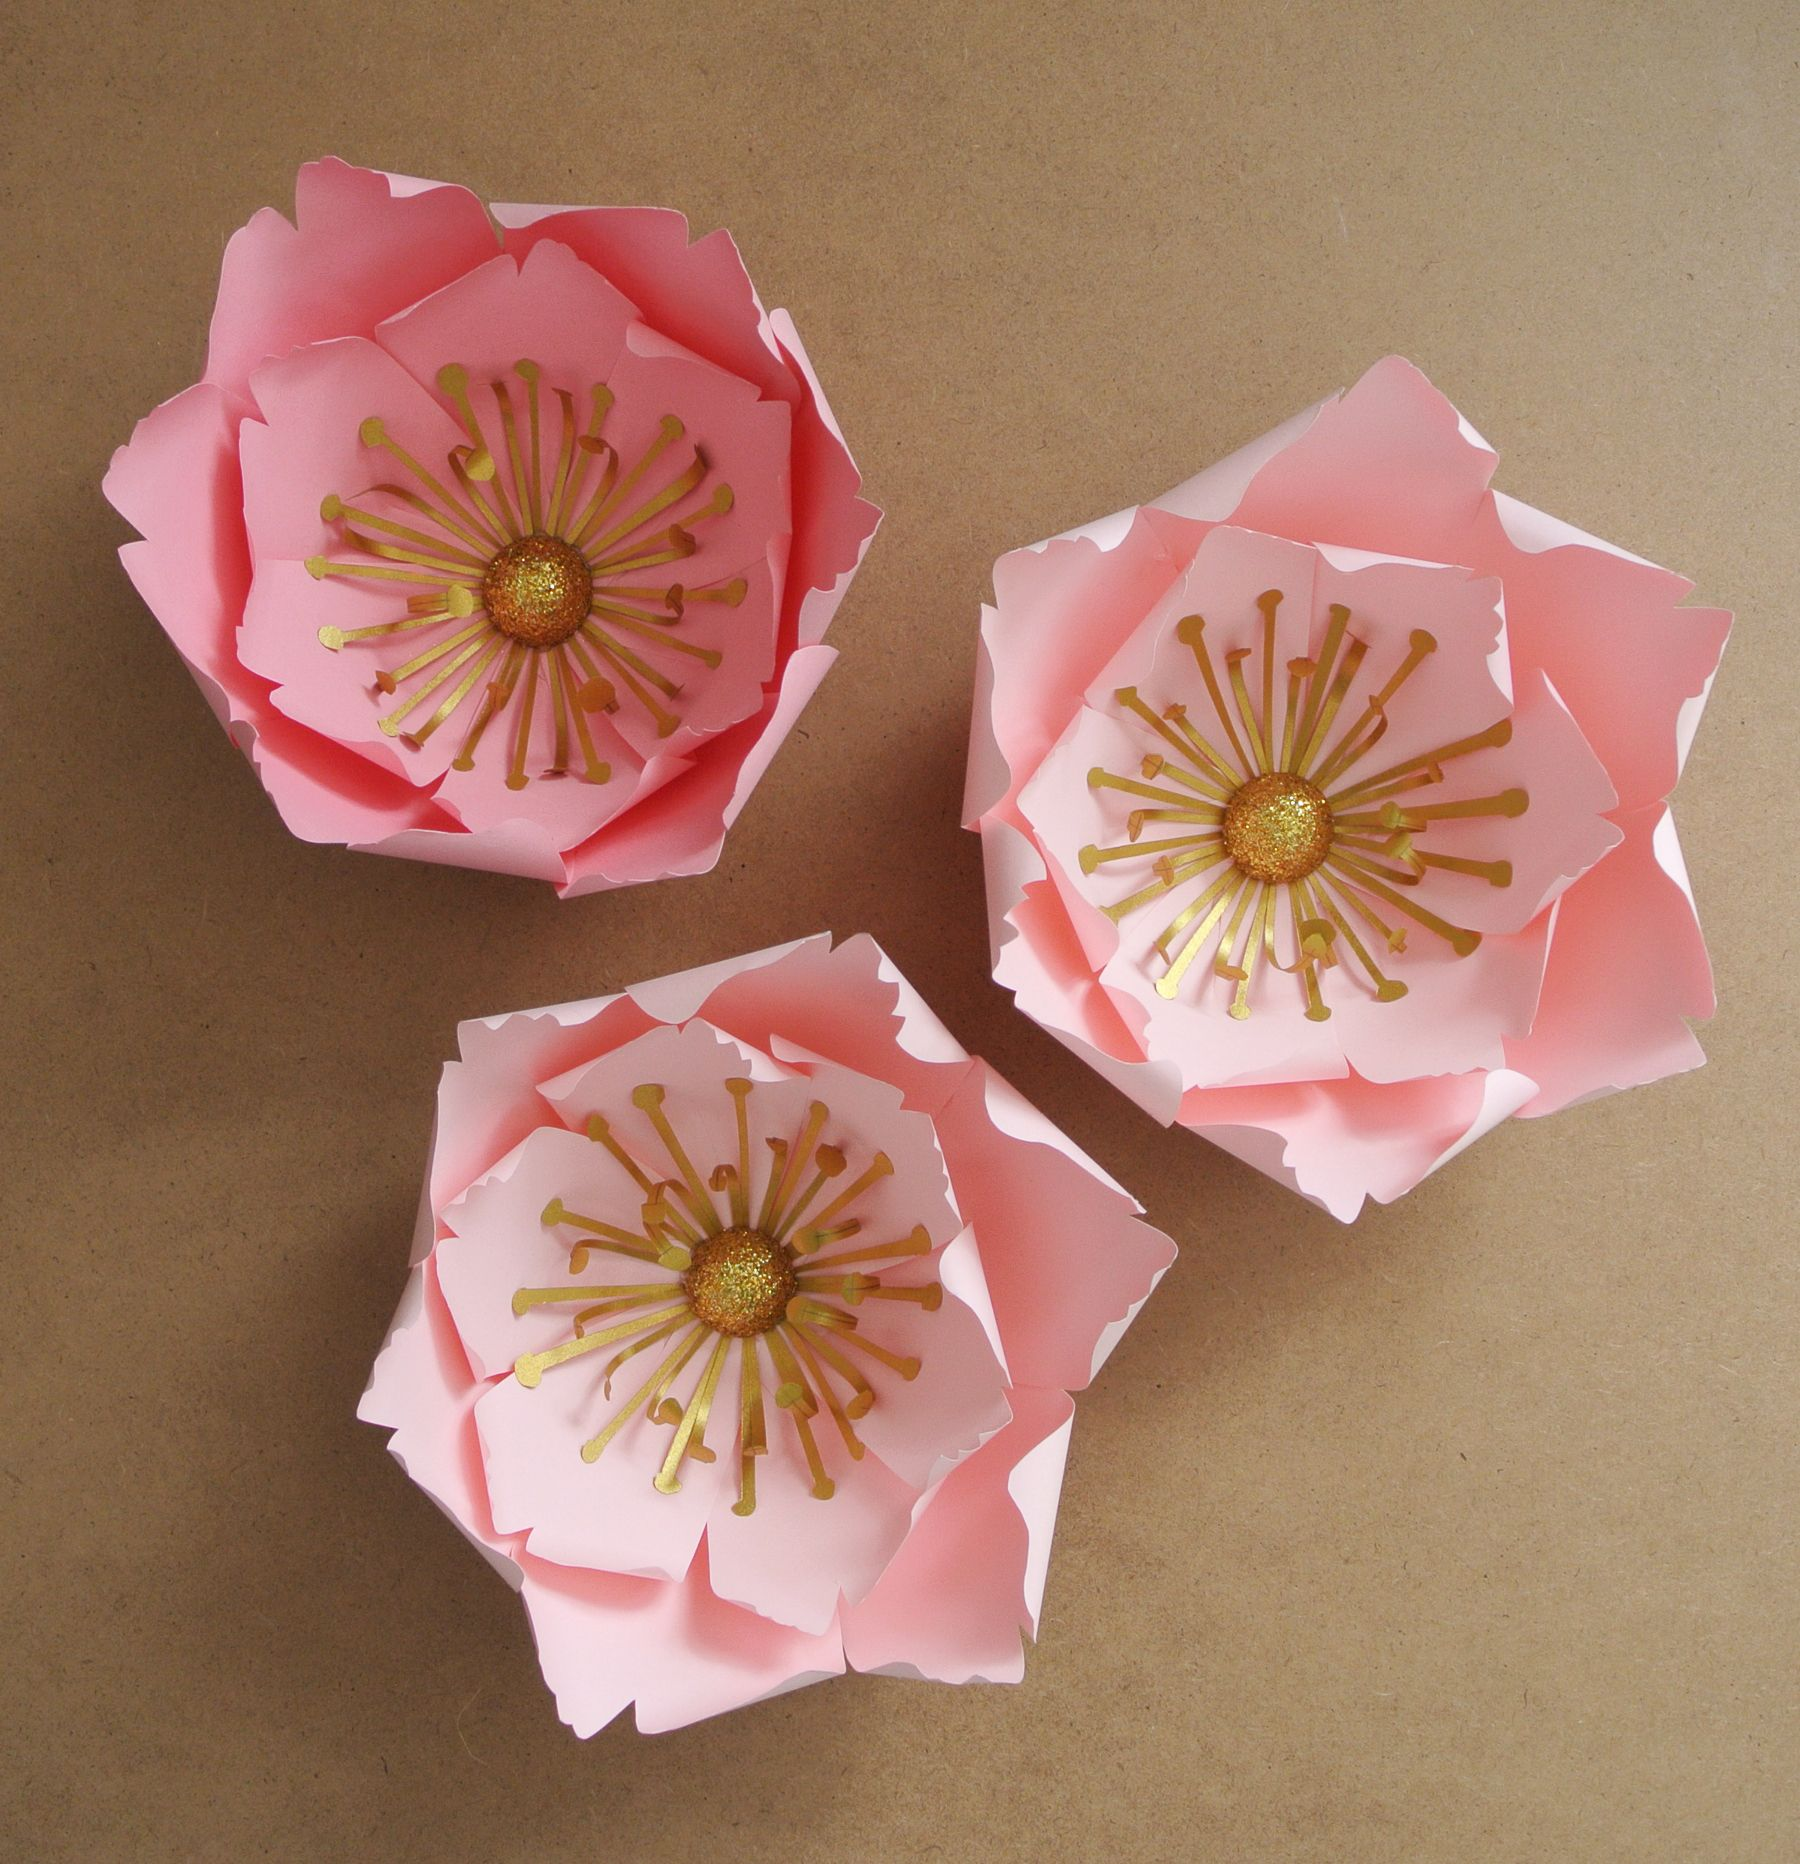 Template N 8 Curled Inwards Small Paper Flower 2 Petal Sizes